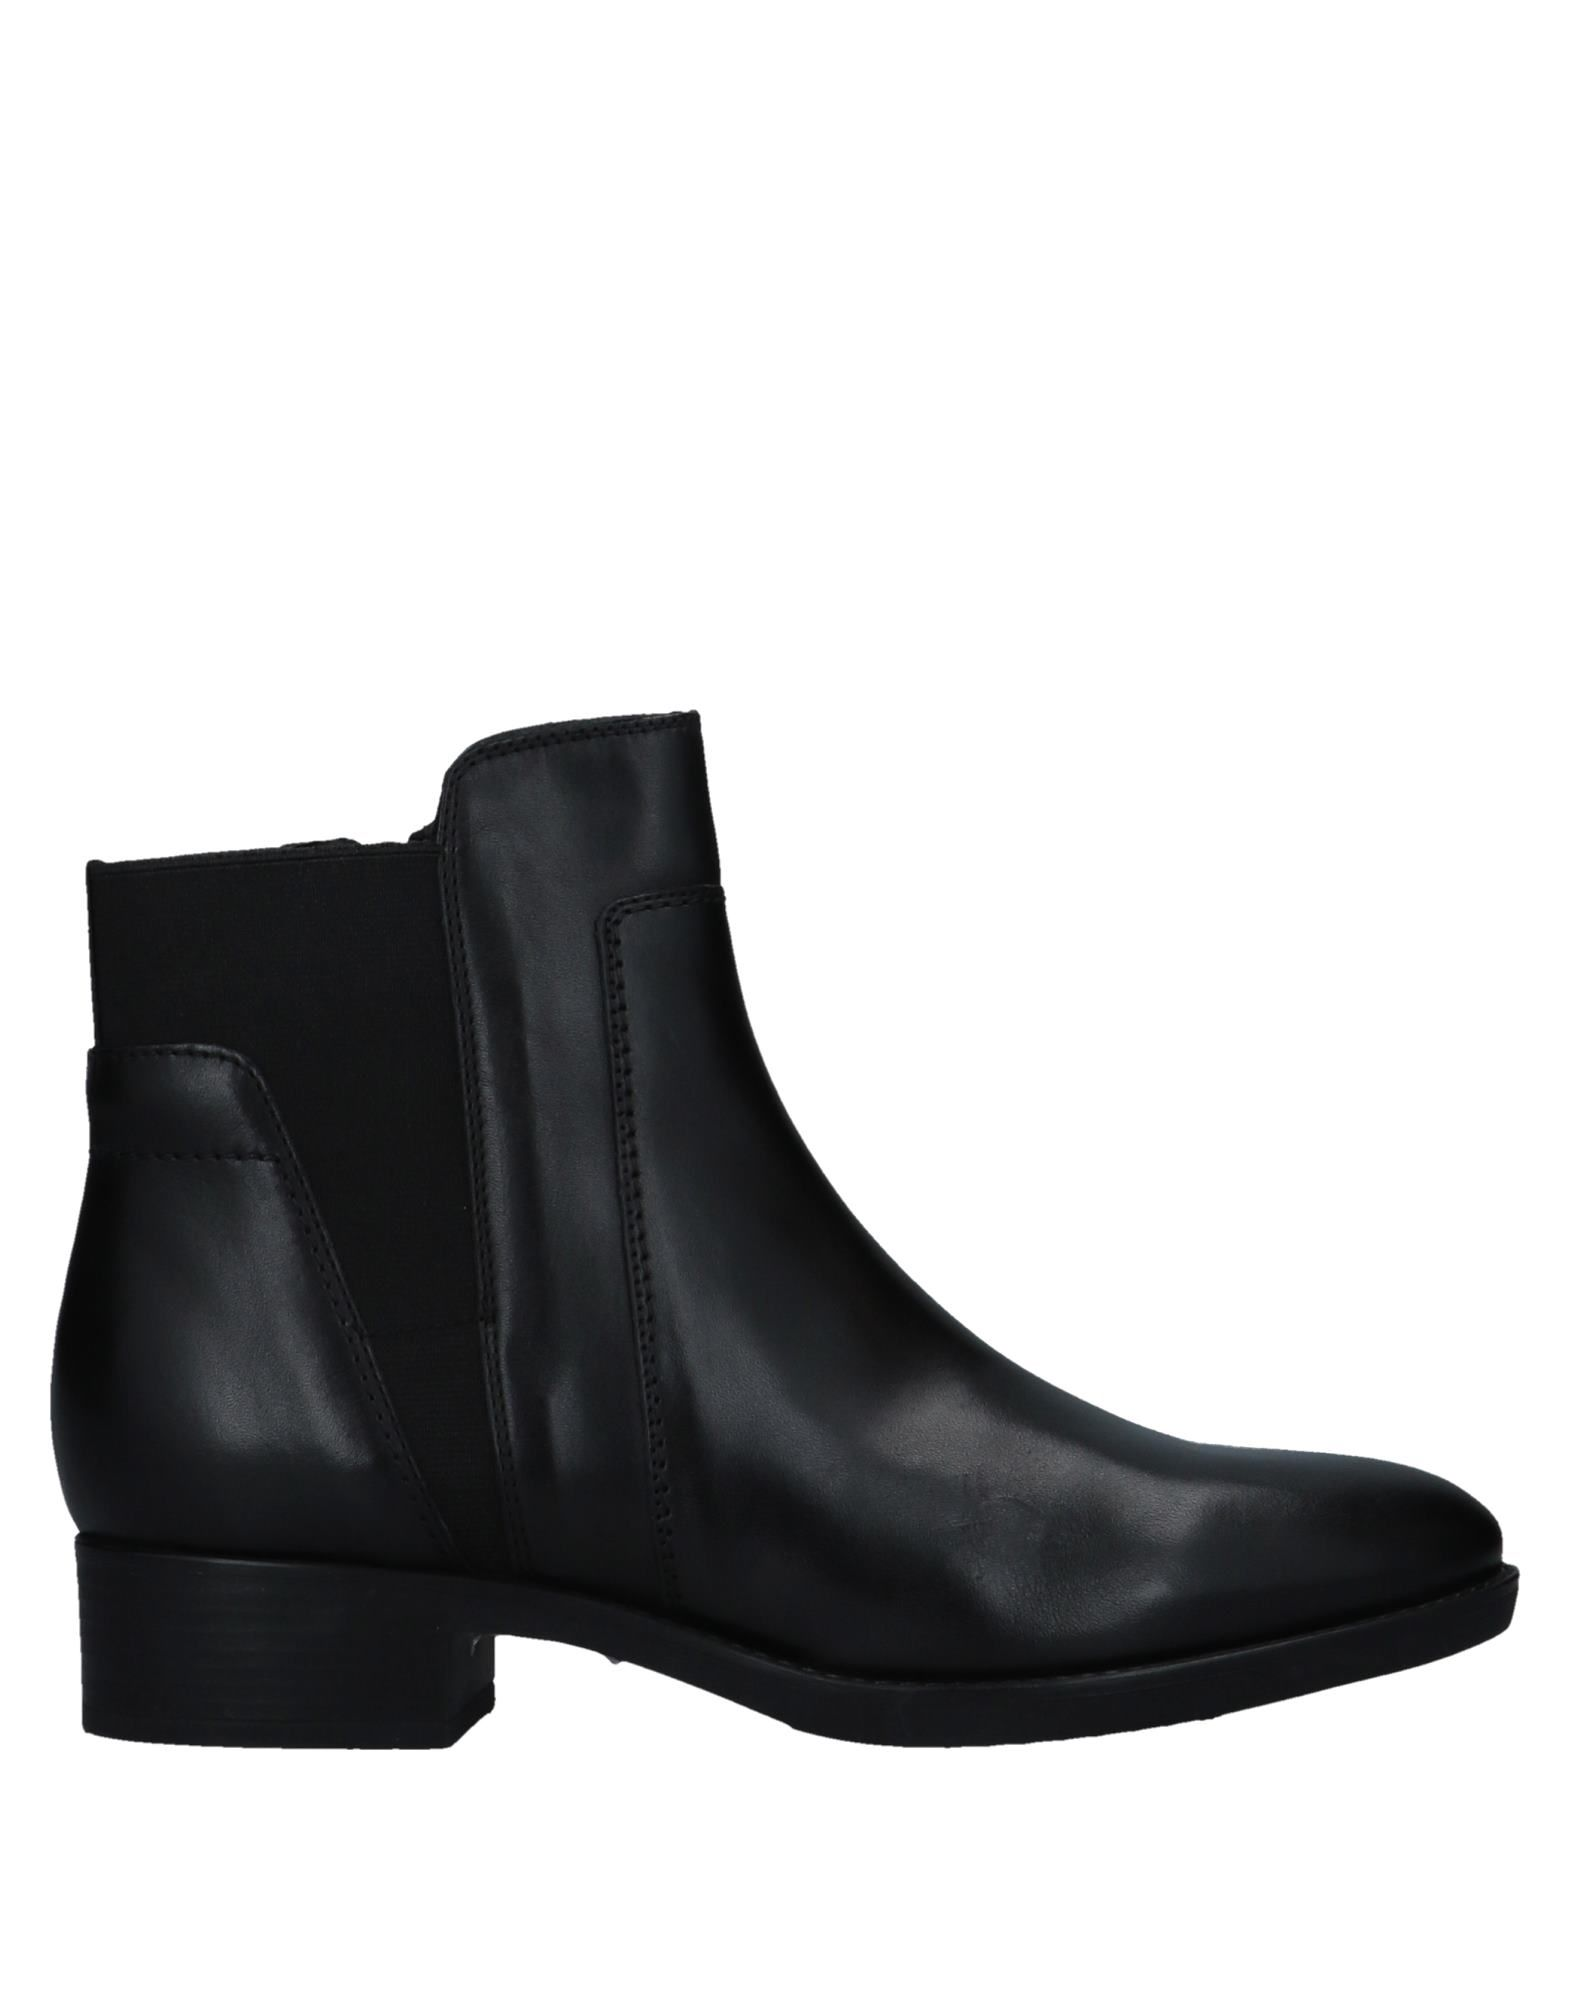 Geox Ankle Boot Boots - Women Geox Ankle Boots Boot online on  Australia - 11541899UG e33b63